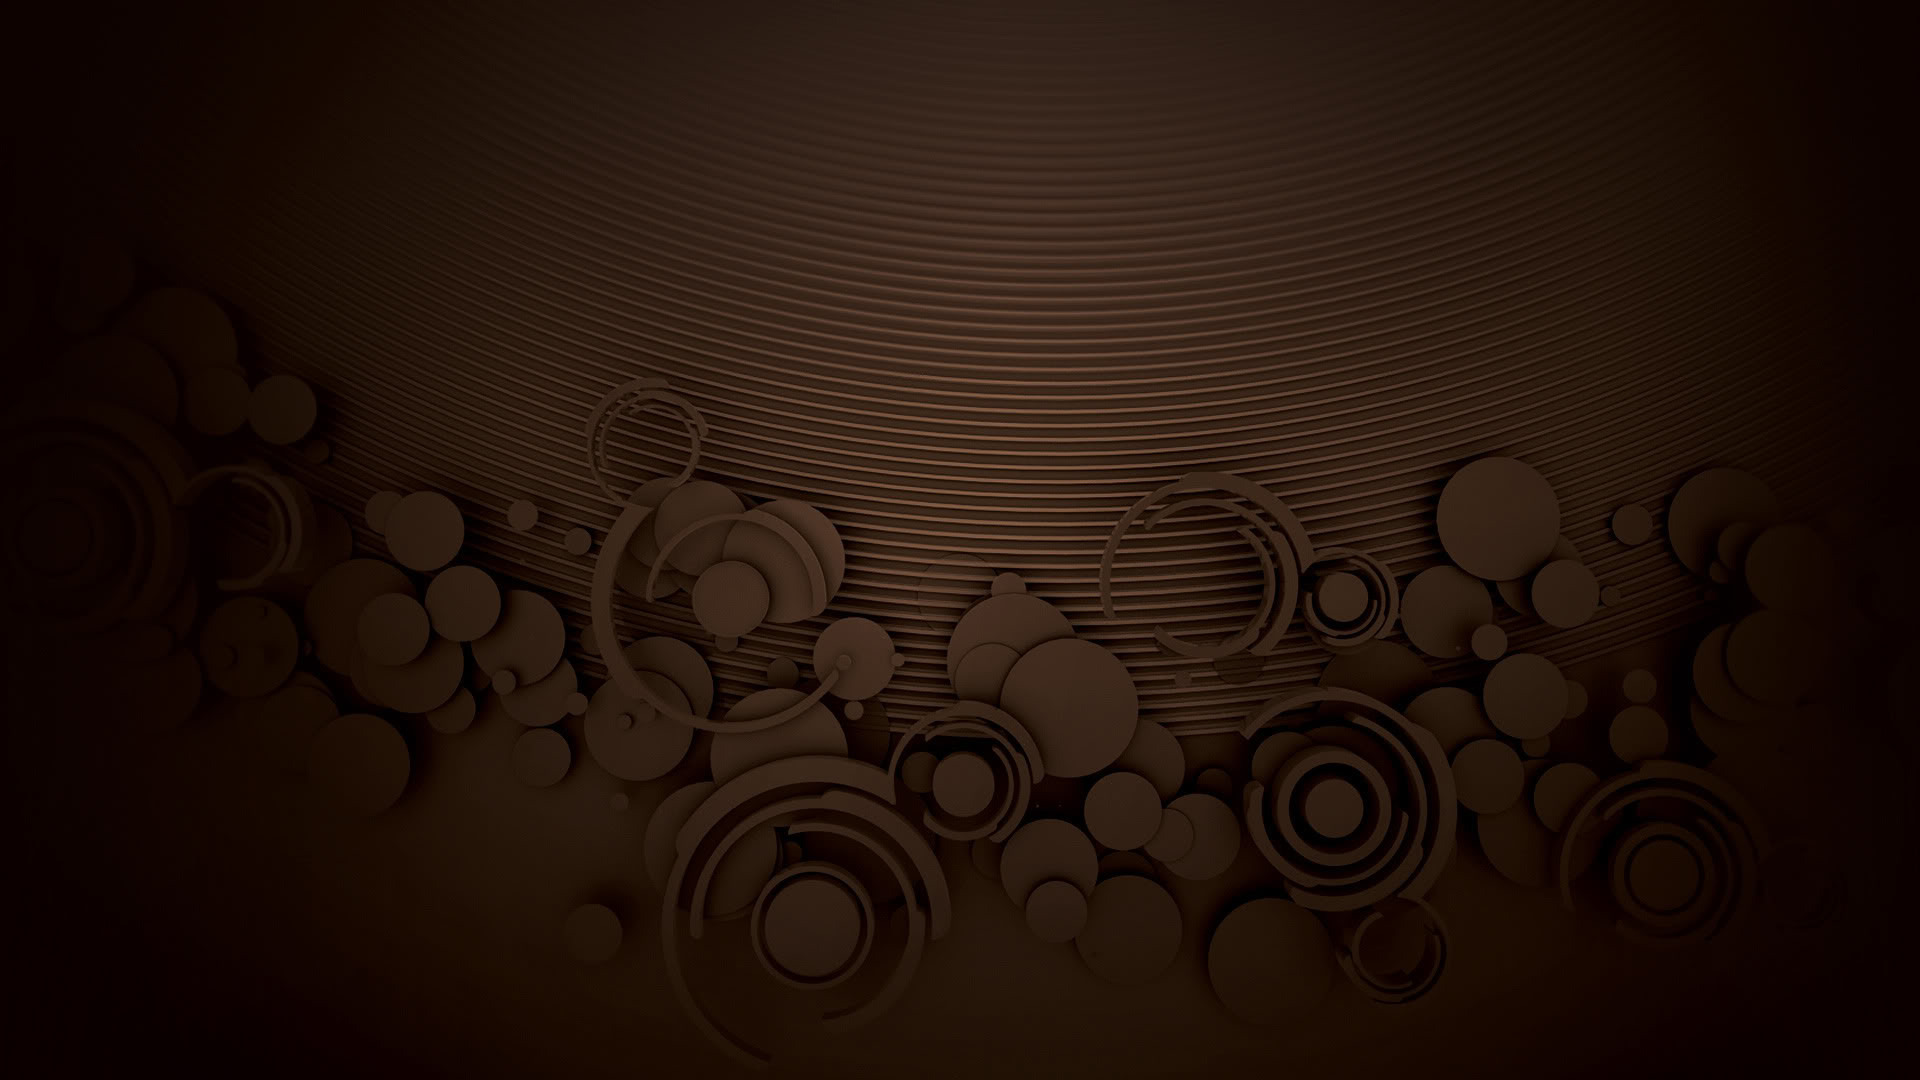 wallpaper 3840x2160 abstract brown - photo #20